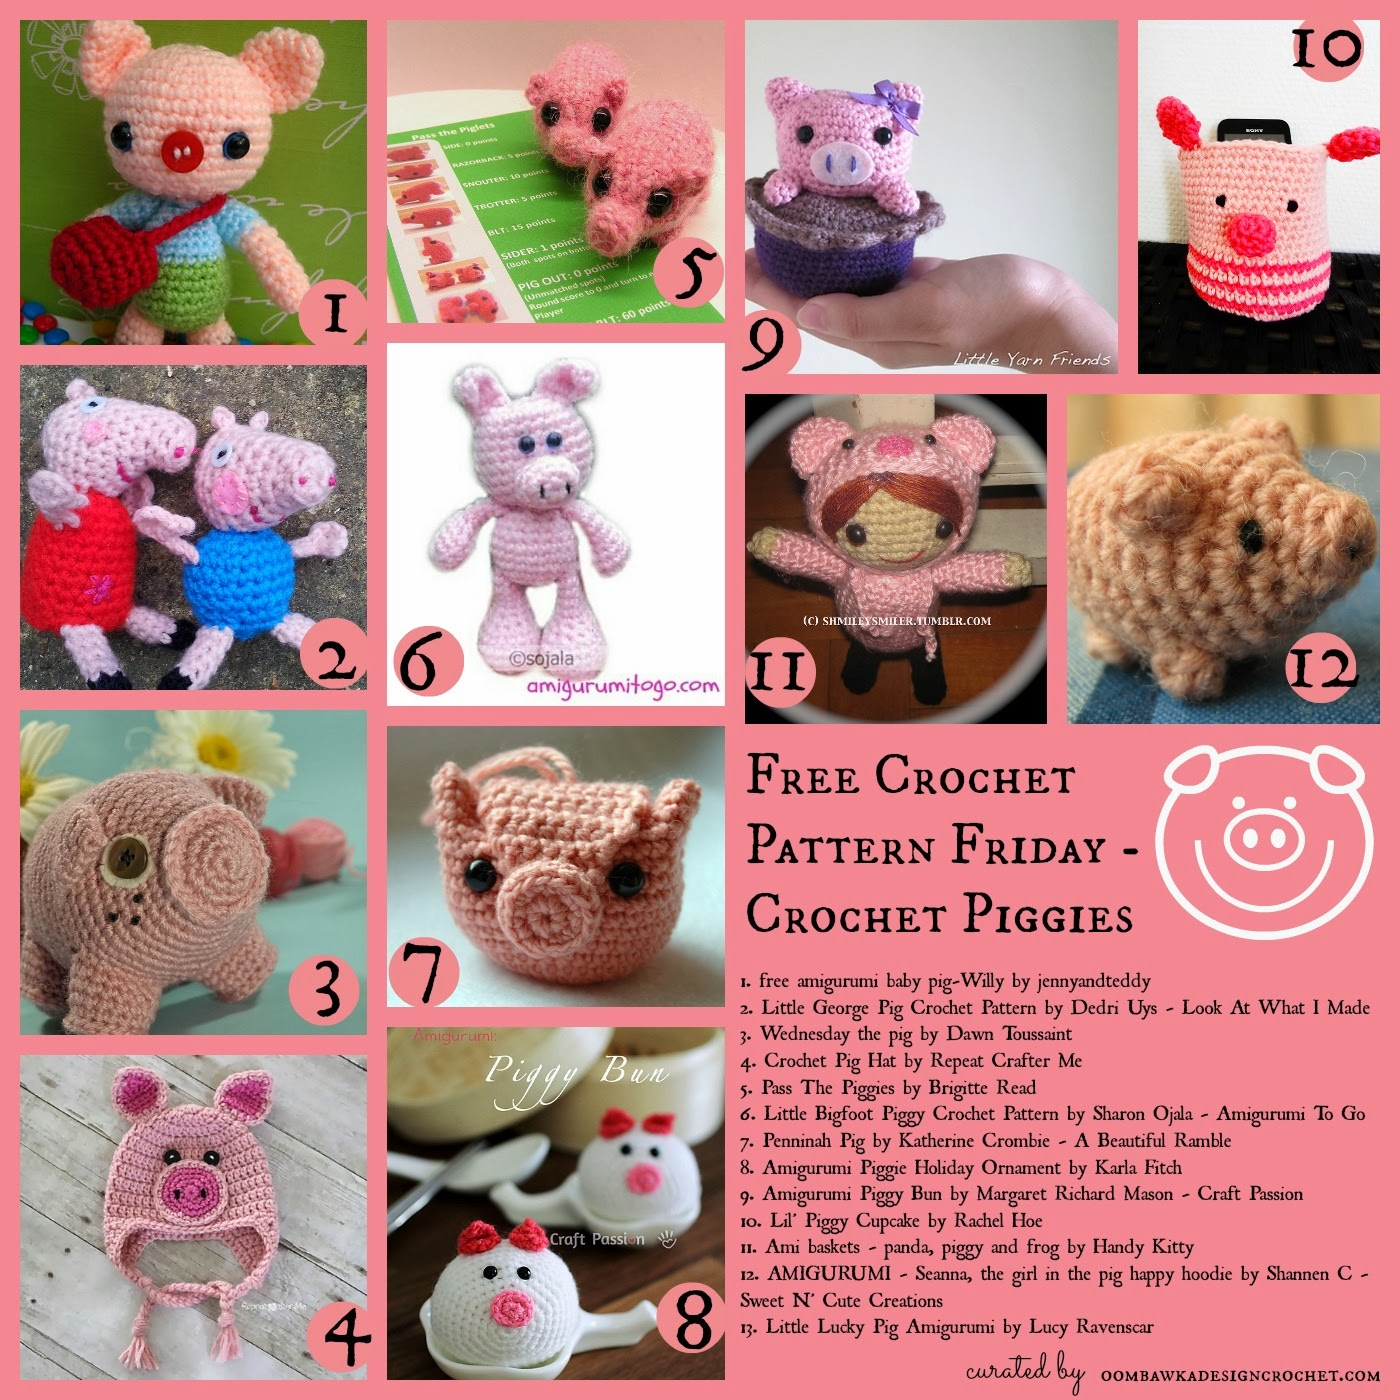 Free Crochet Pattern Friday - Little Pig Little Pig - Free Crochet ...